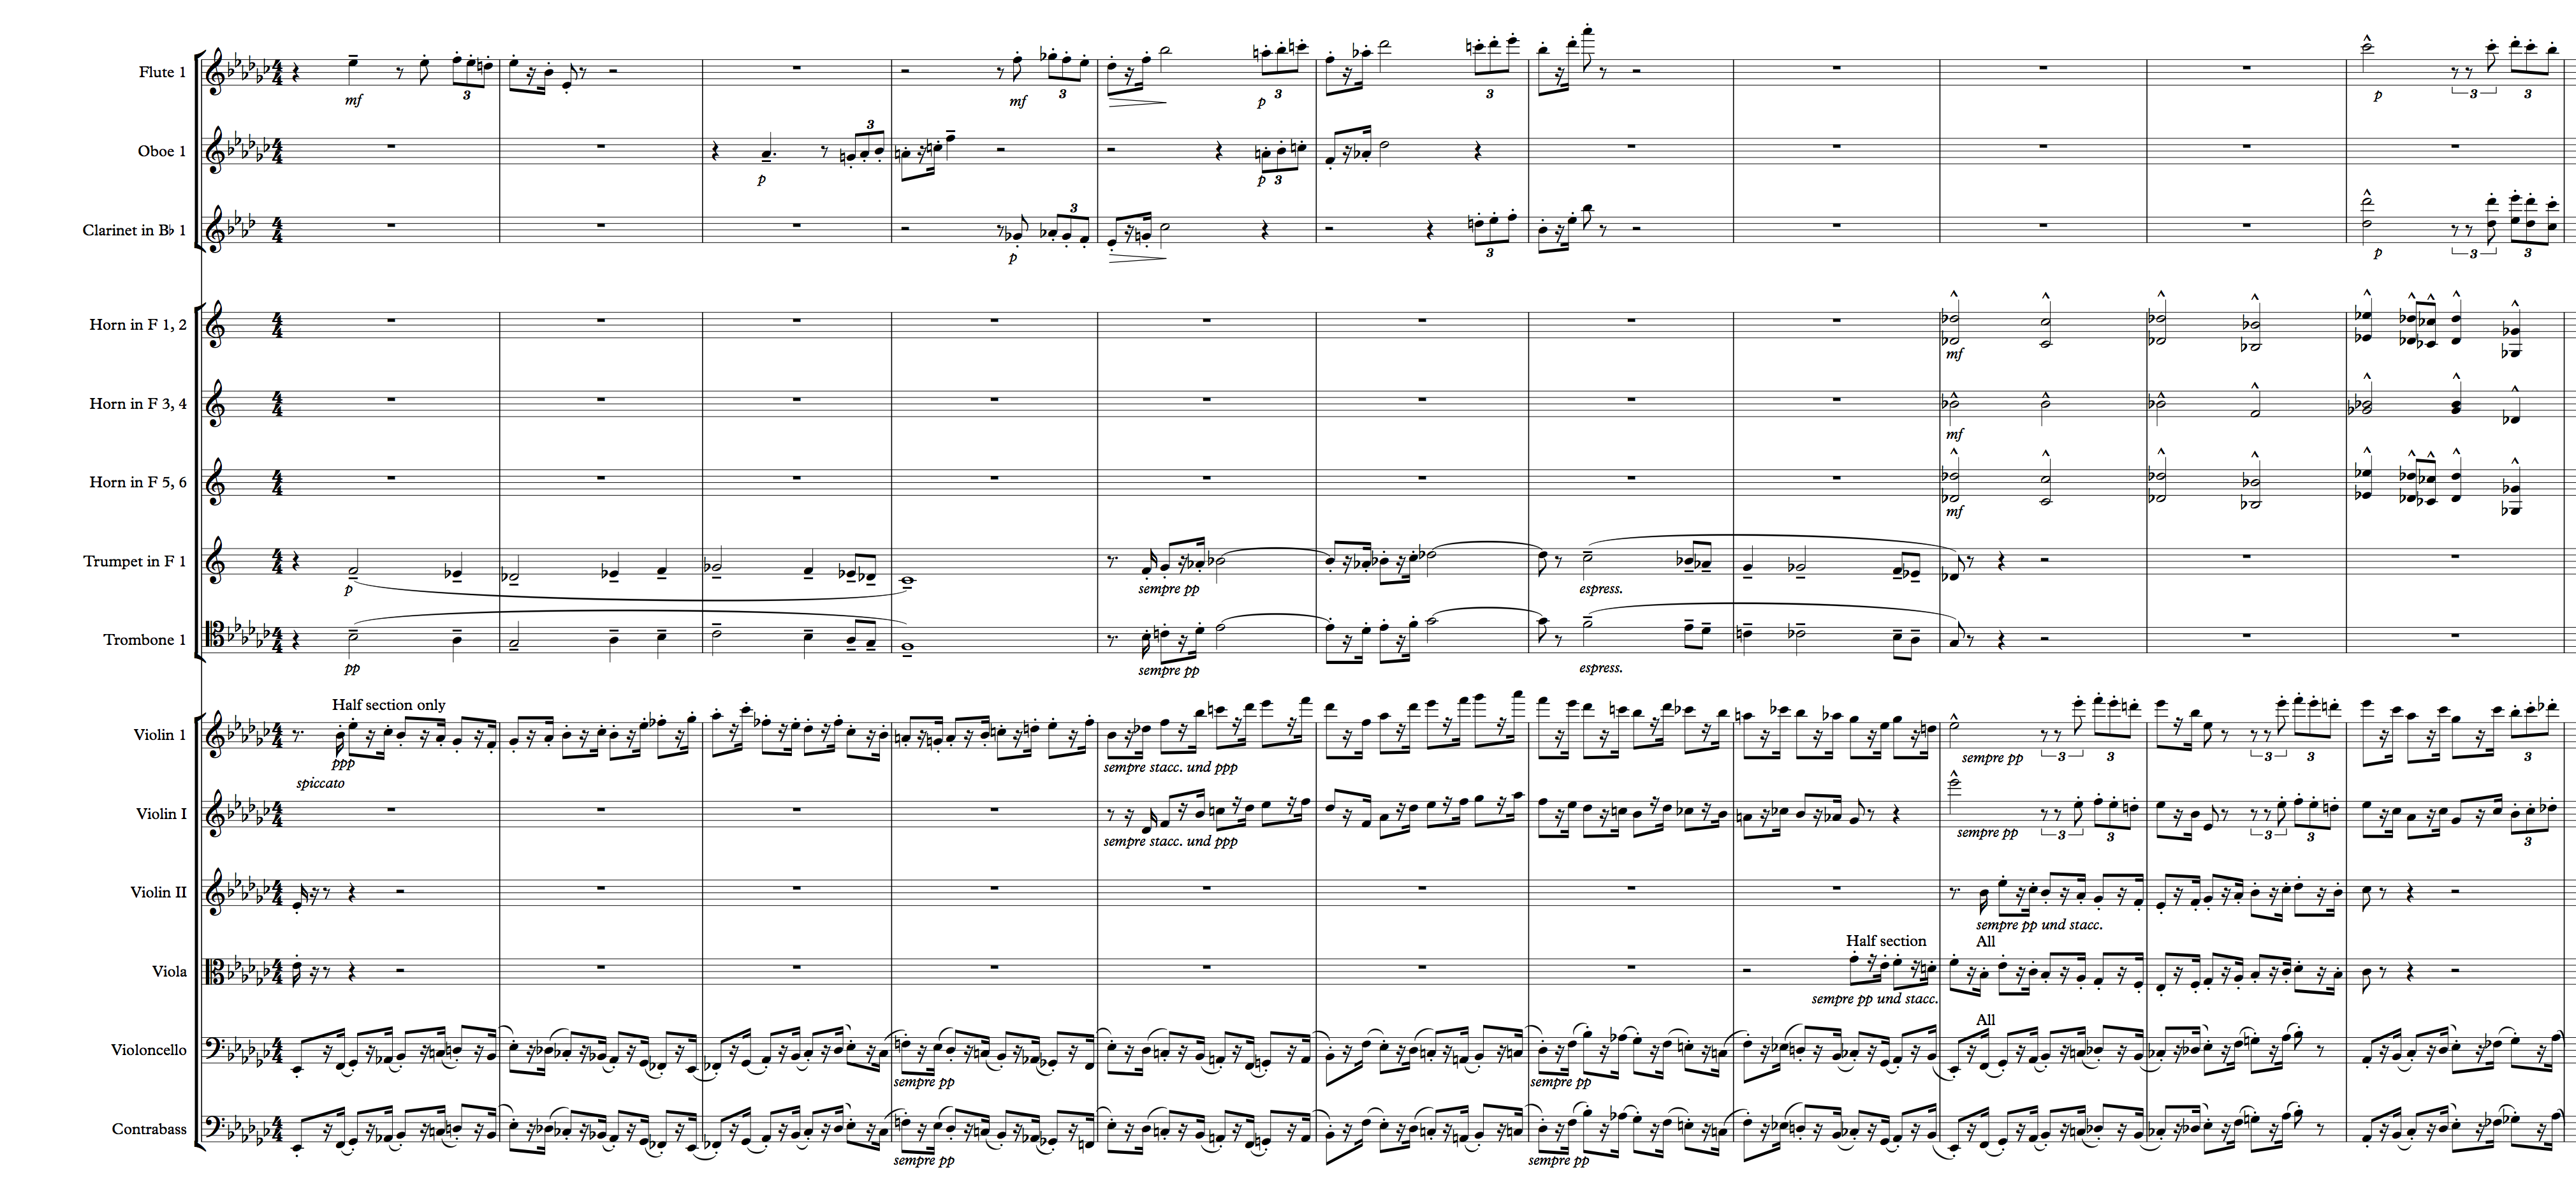 mahler symphony 2 movement v essay Mahler's ninth symphony can be seen as a adaptation of musical narrativity  analogous to the  for a generation of scholars2 this in part reflects the fashion  in scholarship of  speculation5 what this essay aims to do, however, is to trace  a developing history  movement the later discarded andante entitled blumine  239.